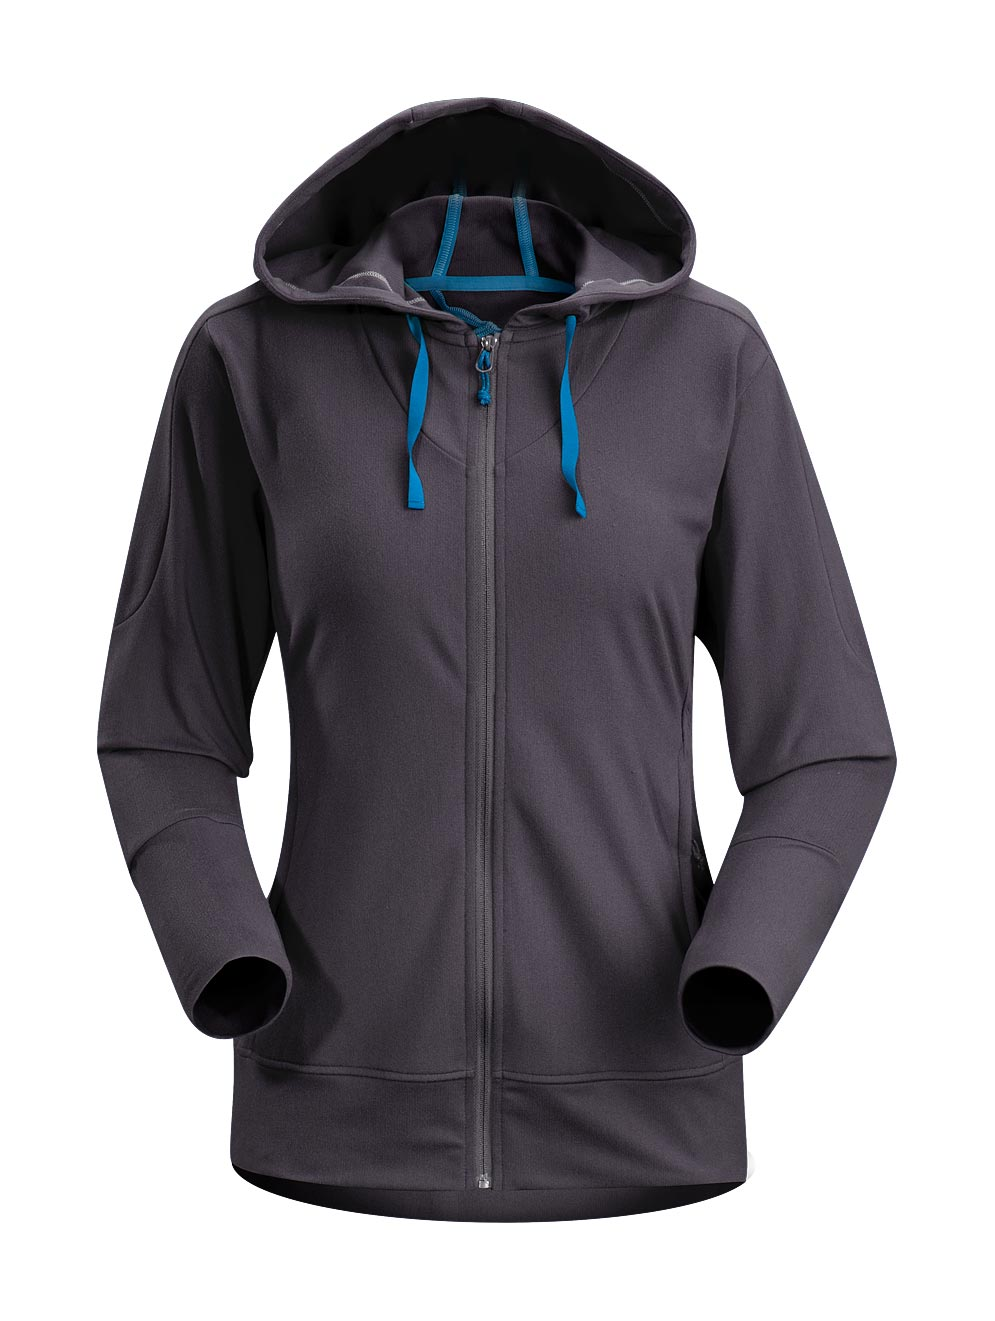 Arcteryx Graphite Solita Hoody - New